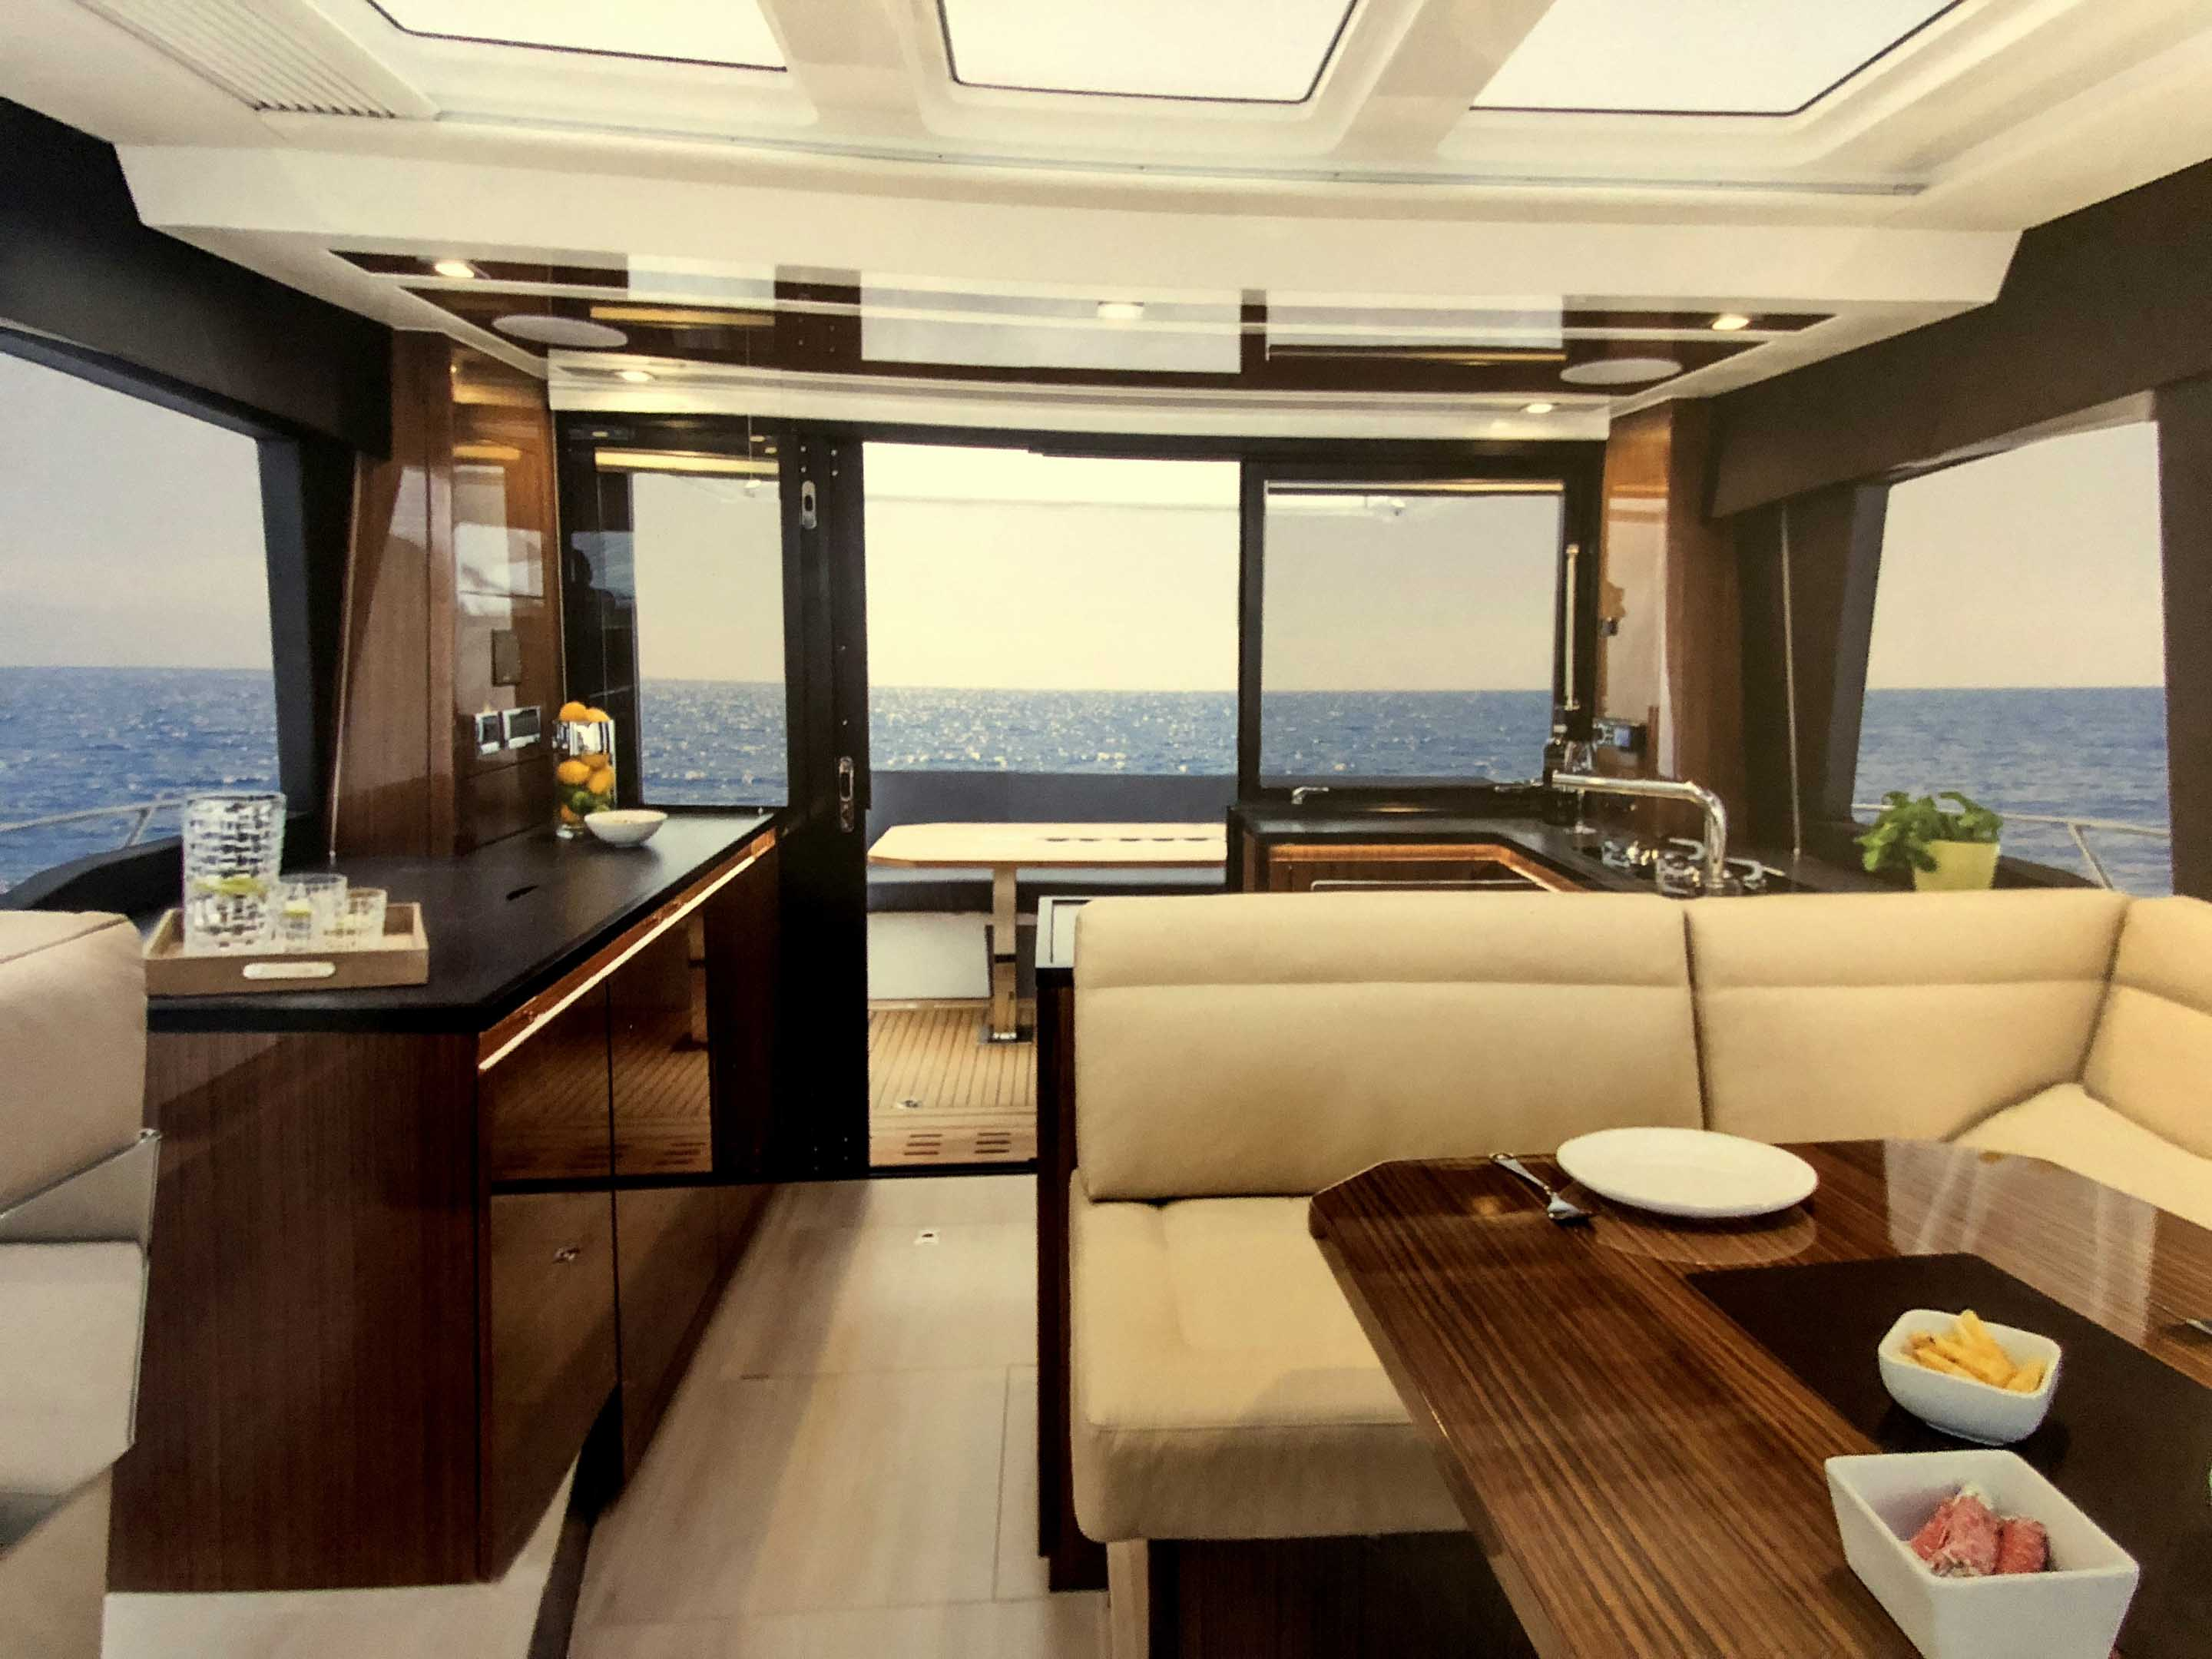 Motor yacht with contemporary interior